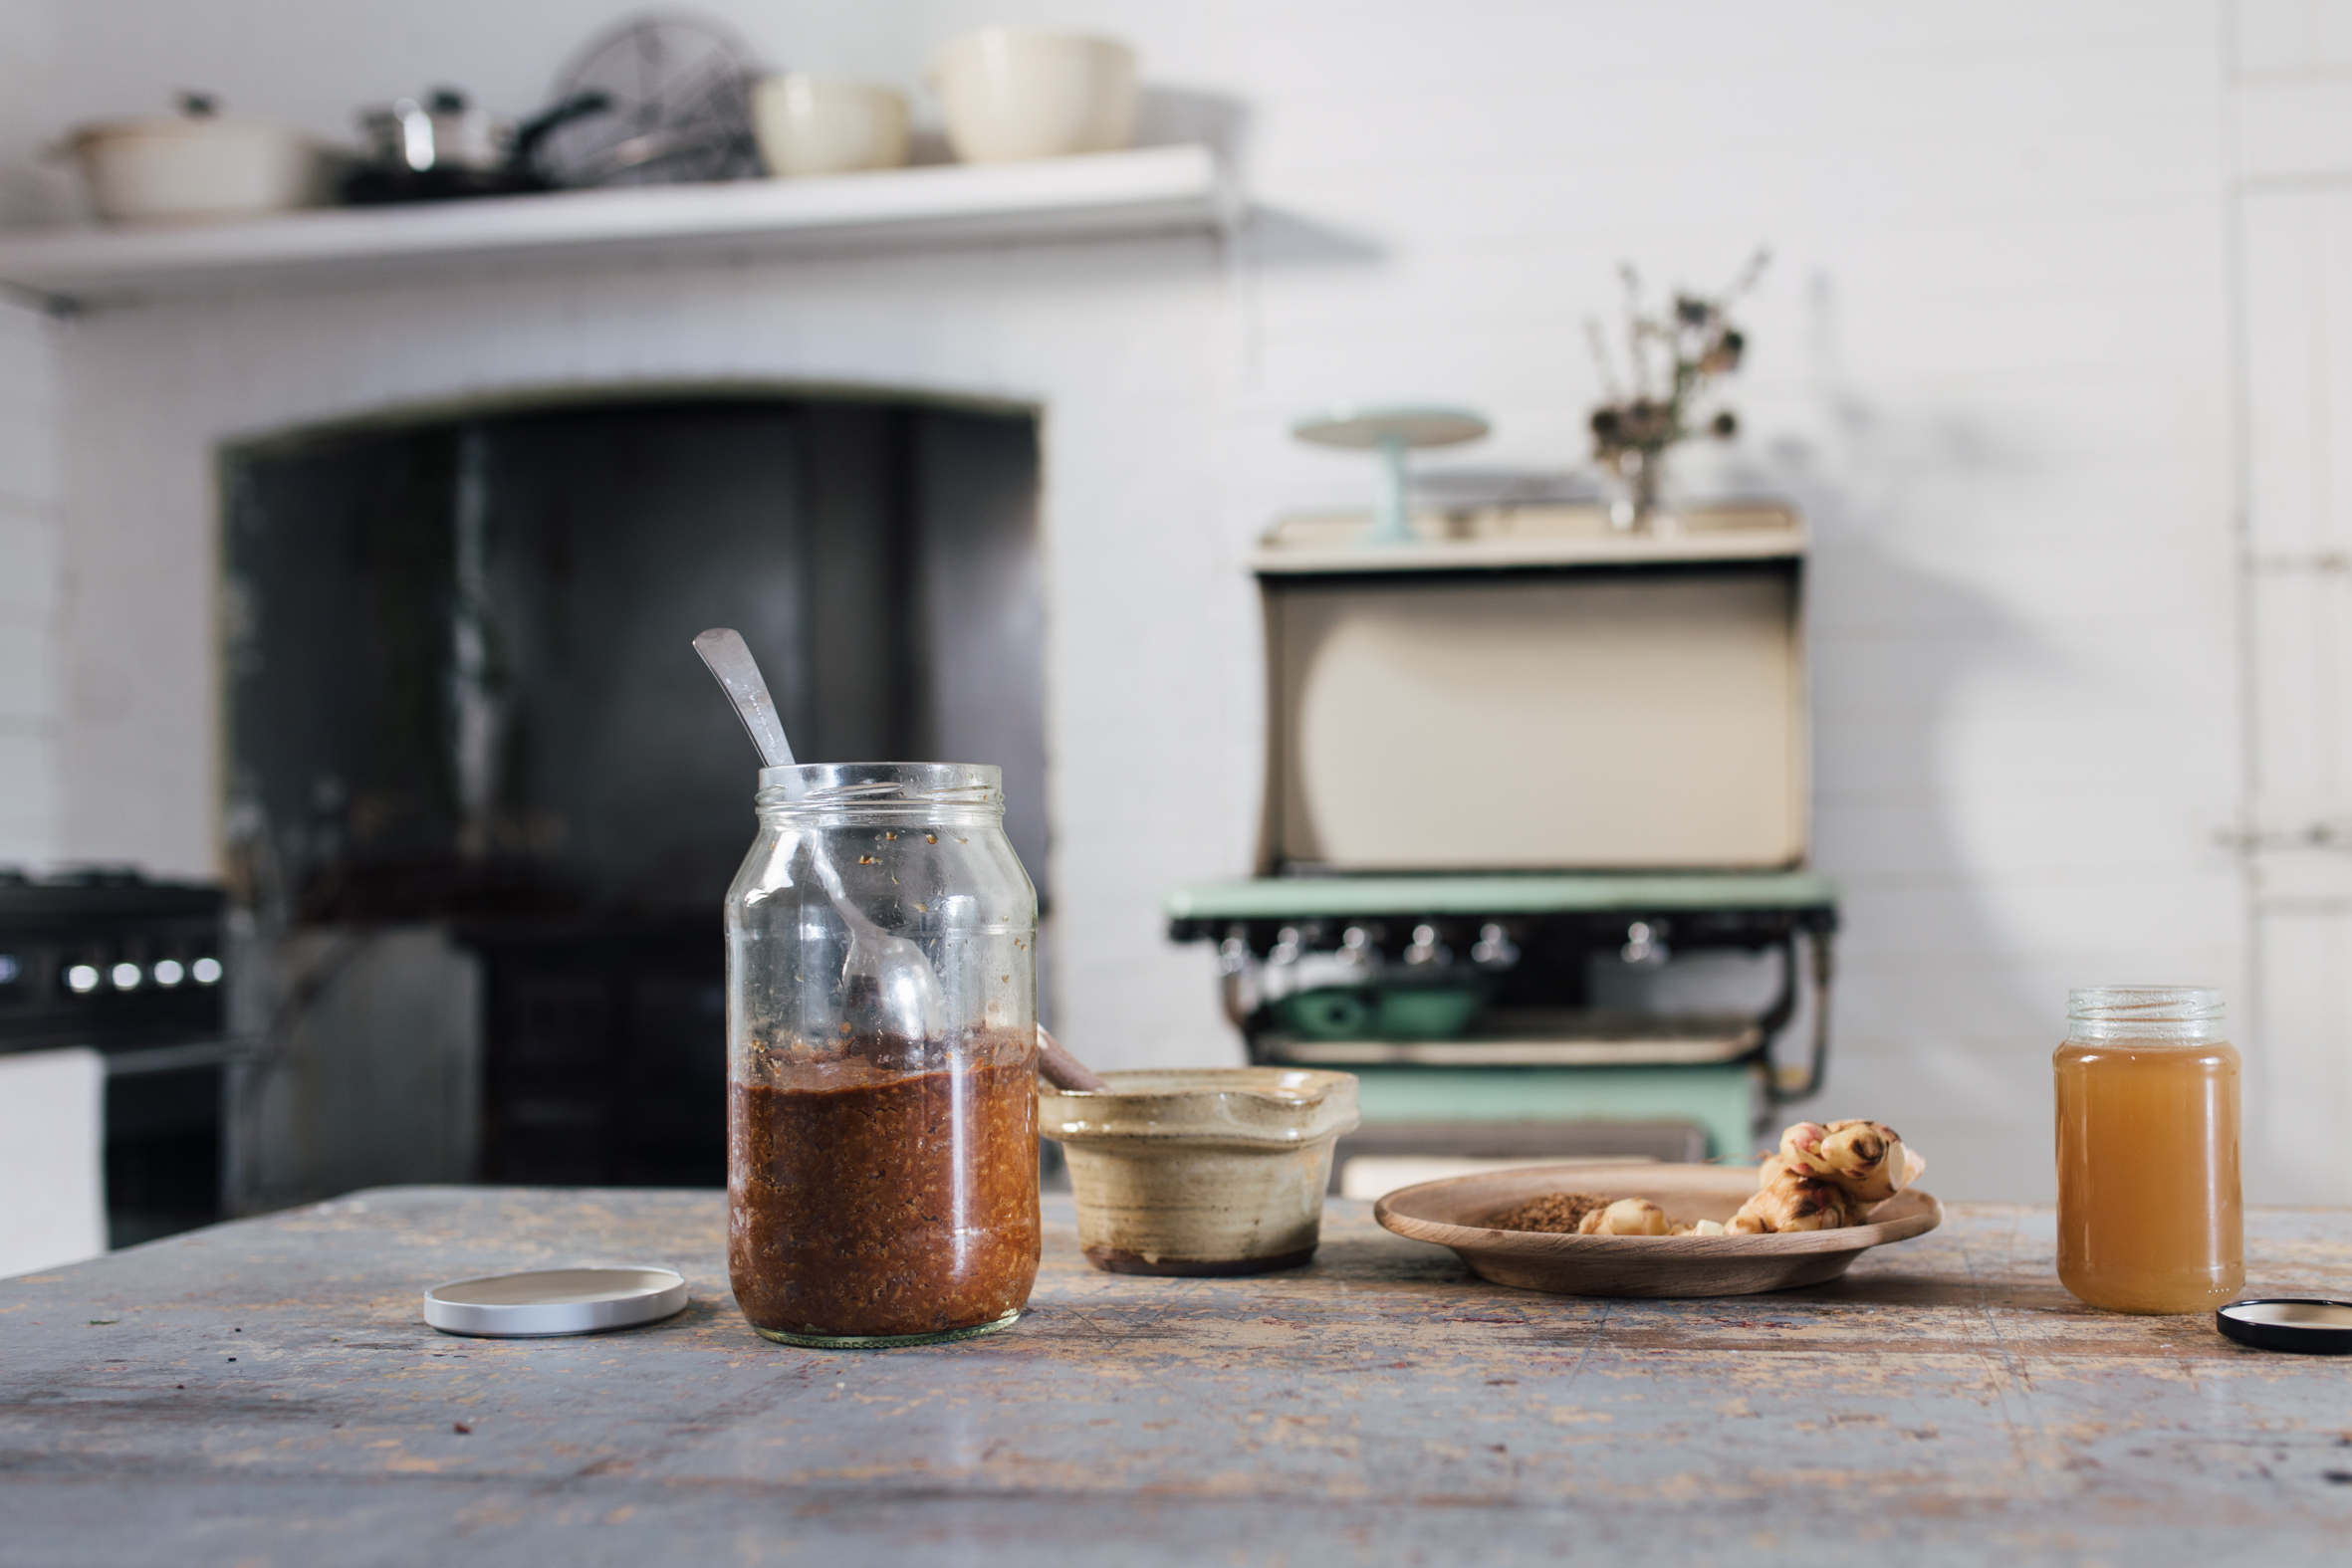 Gillian's homemade miso paste in the jar on the left